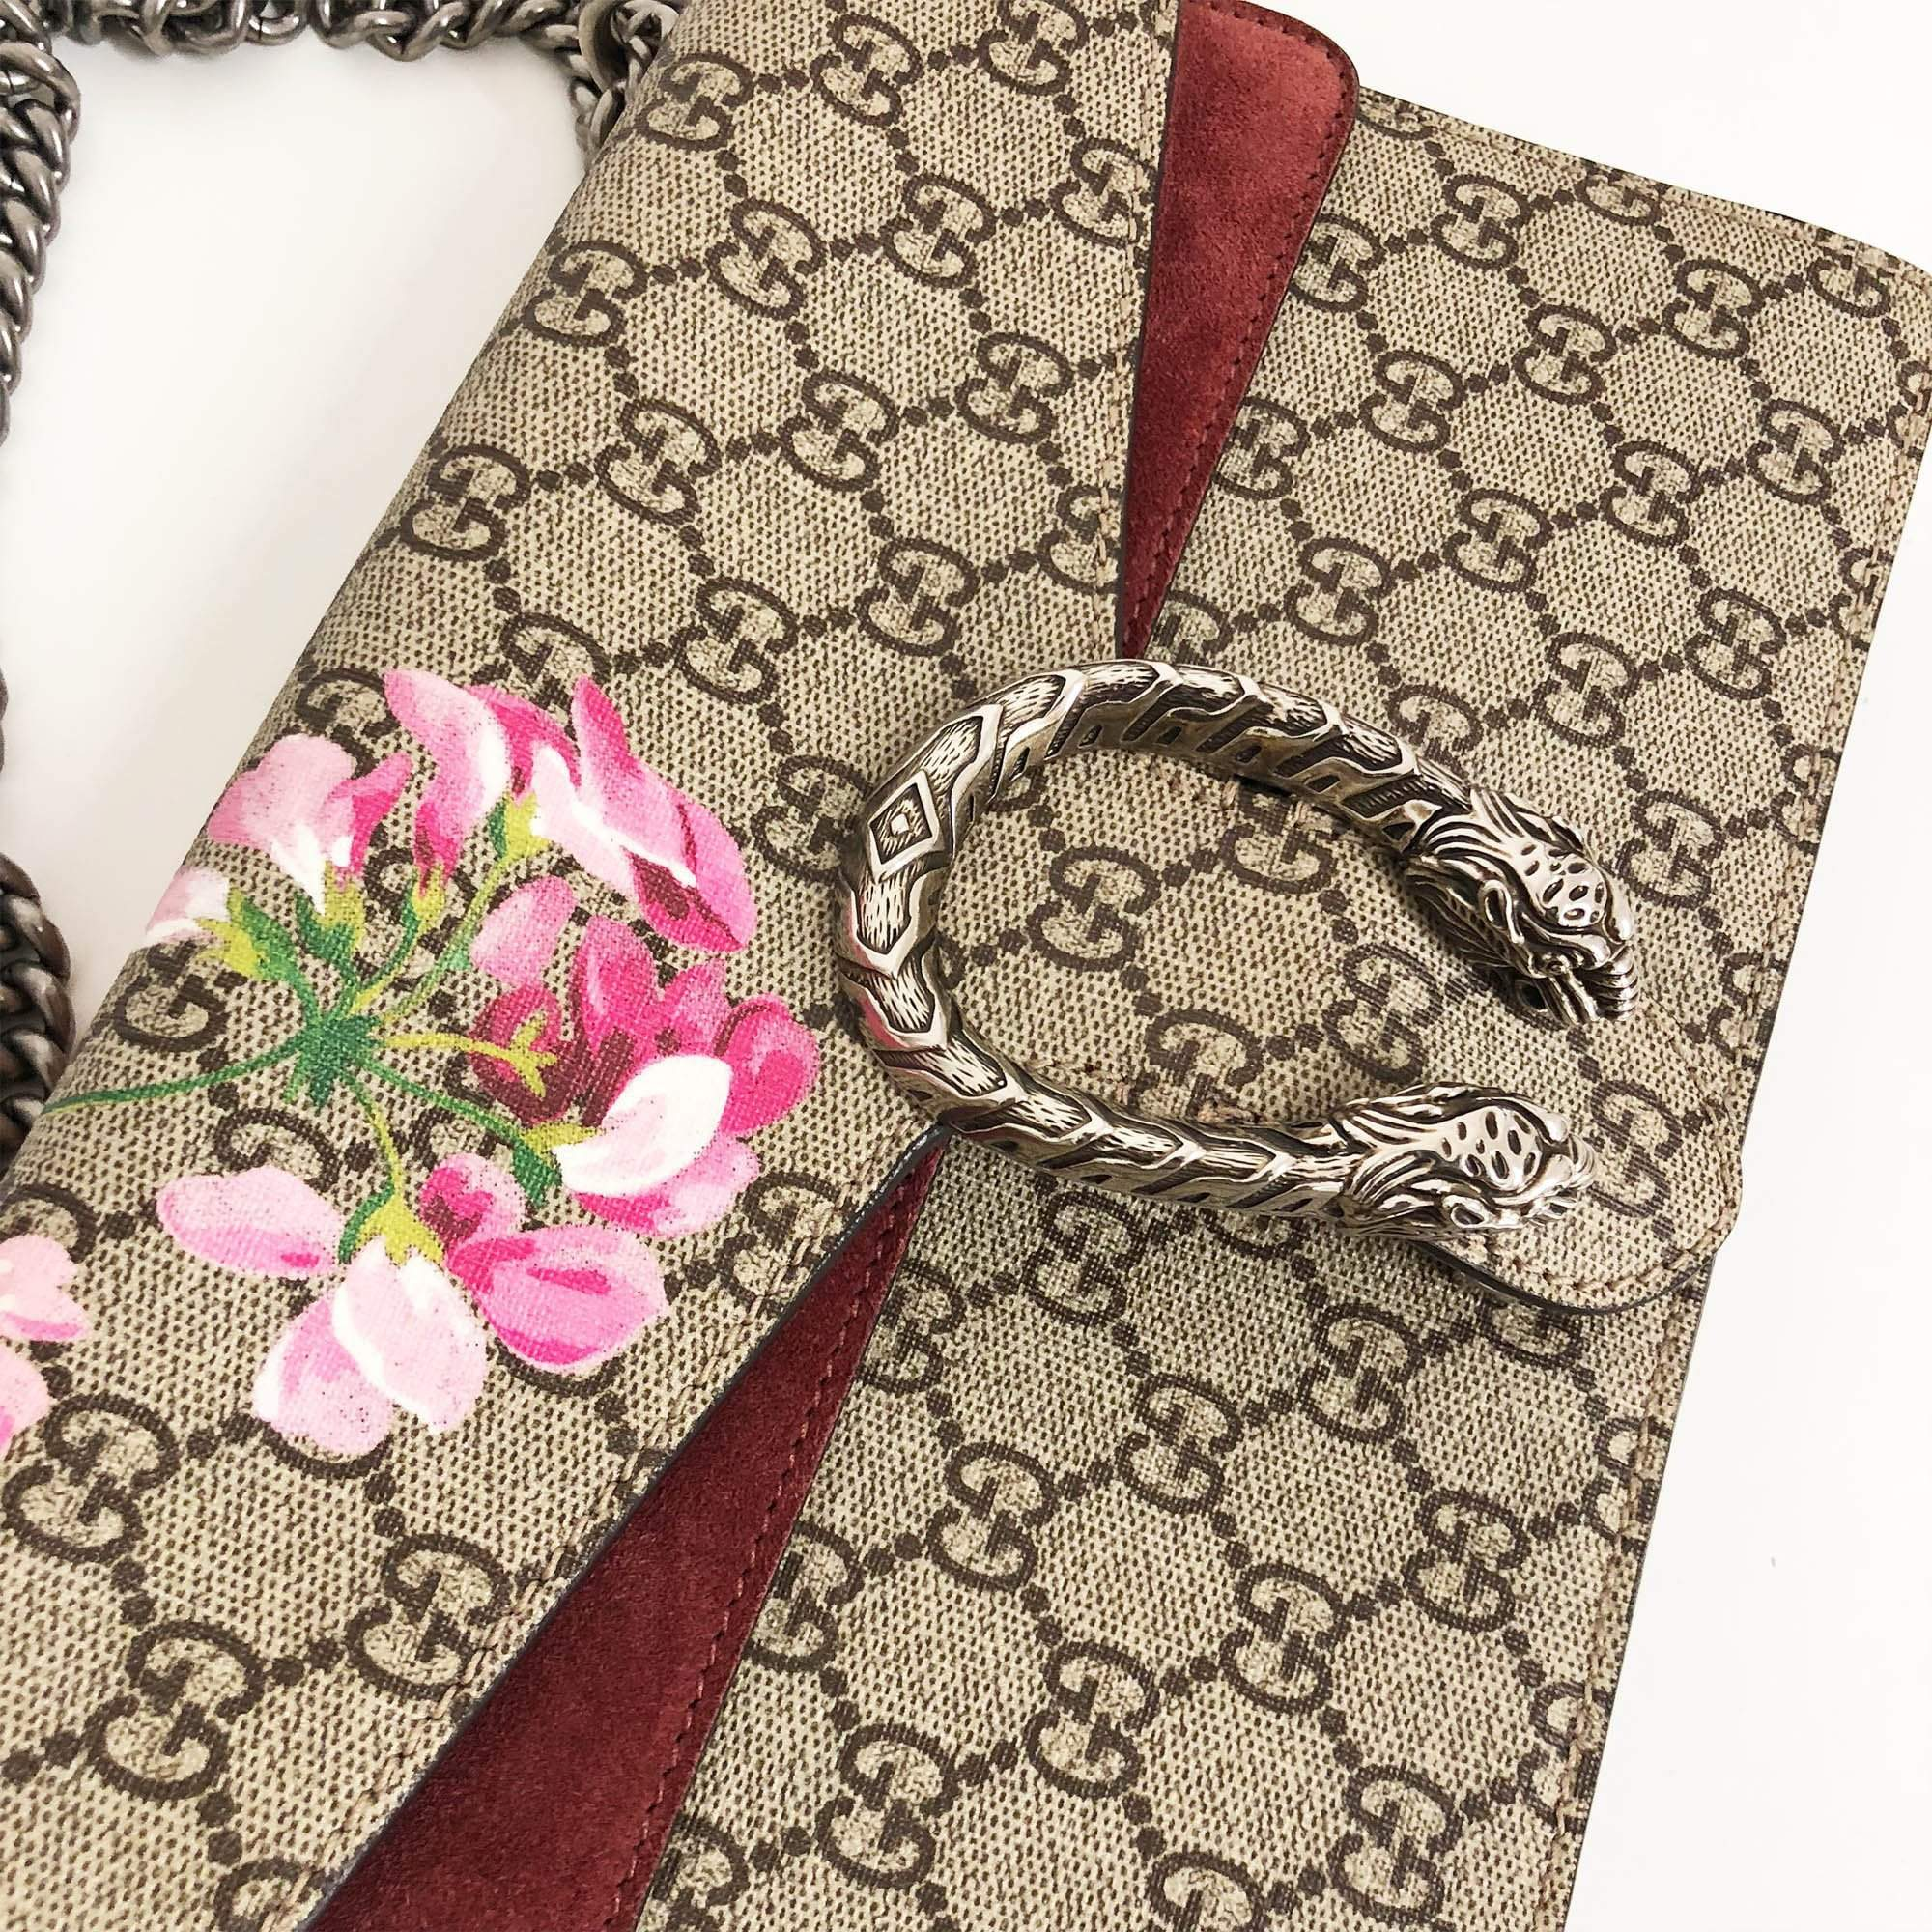 Gucci Dionysus Small GG Blooms shoulder bag